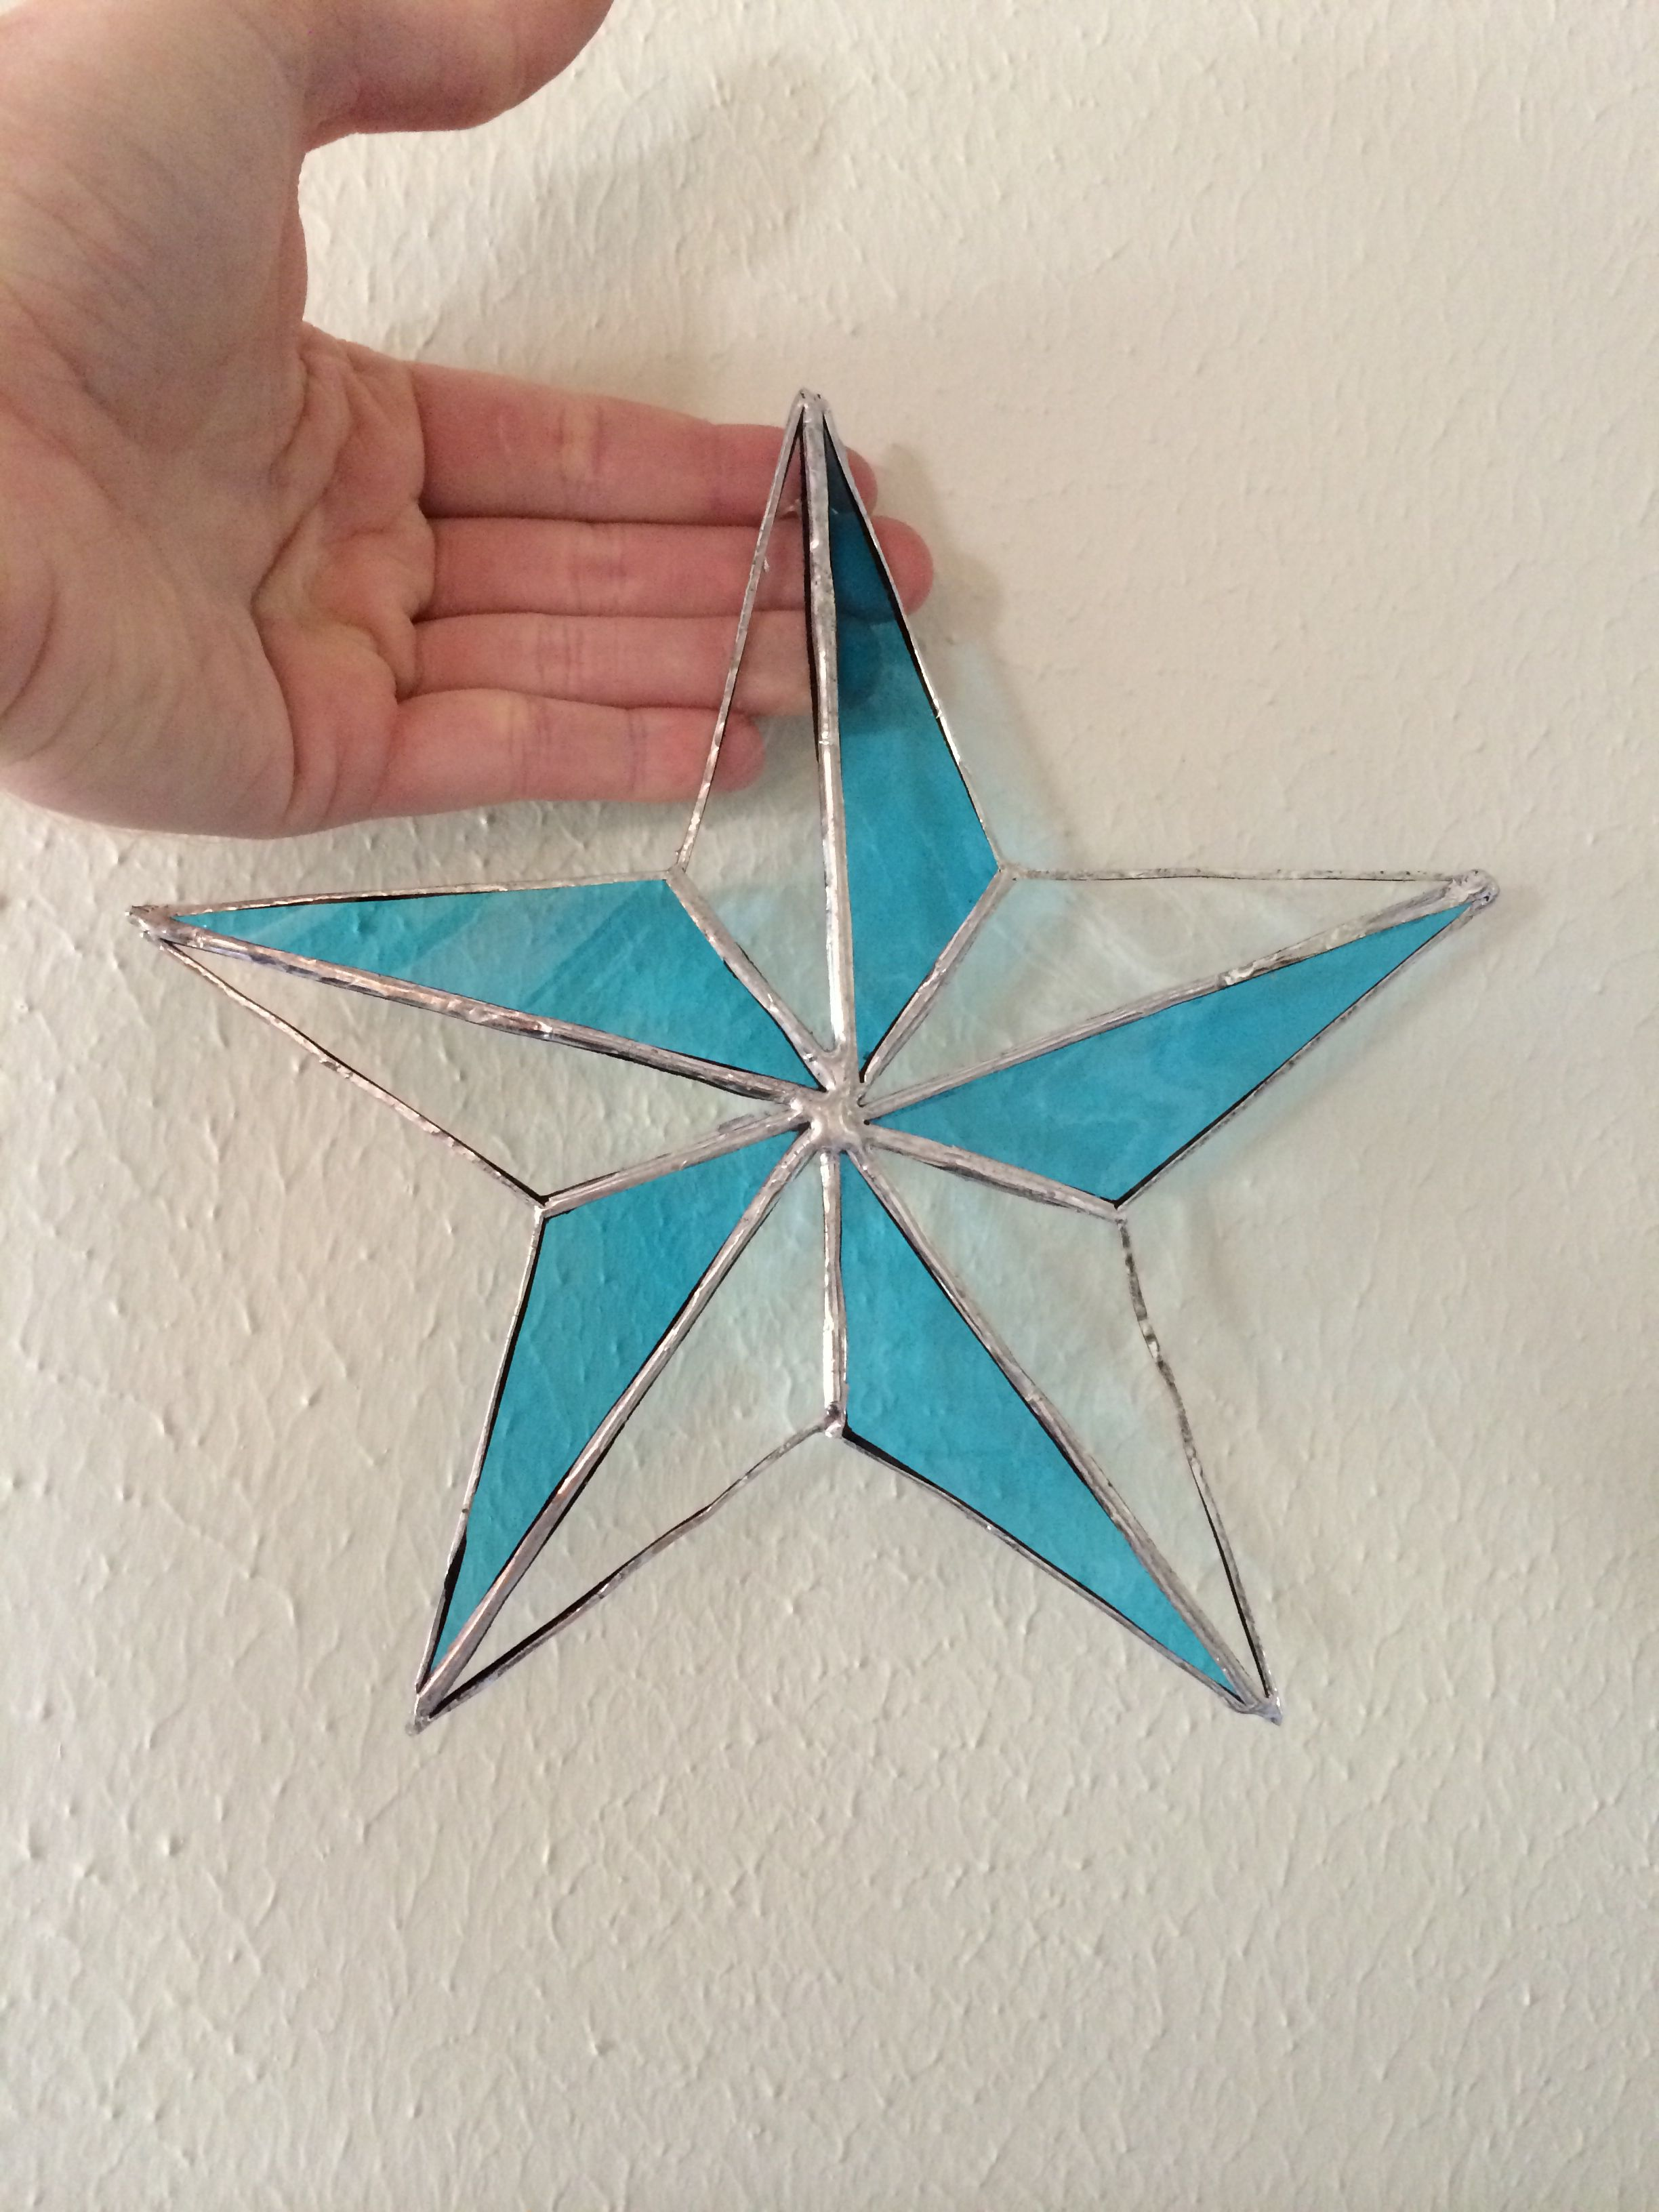 Star. First one